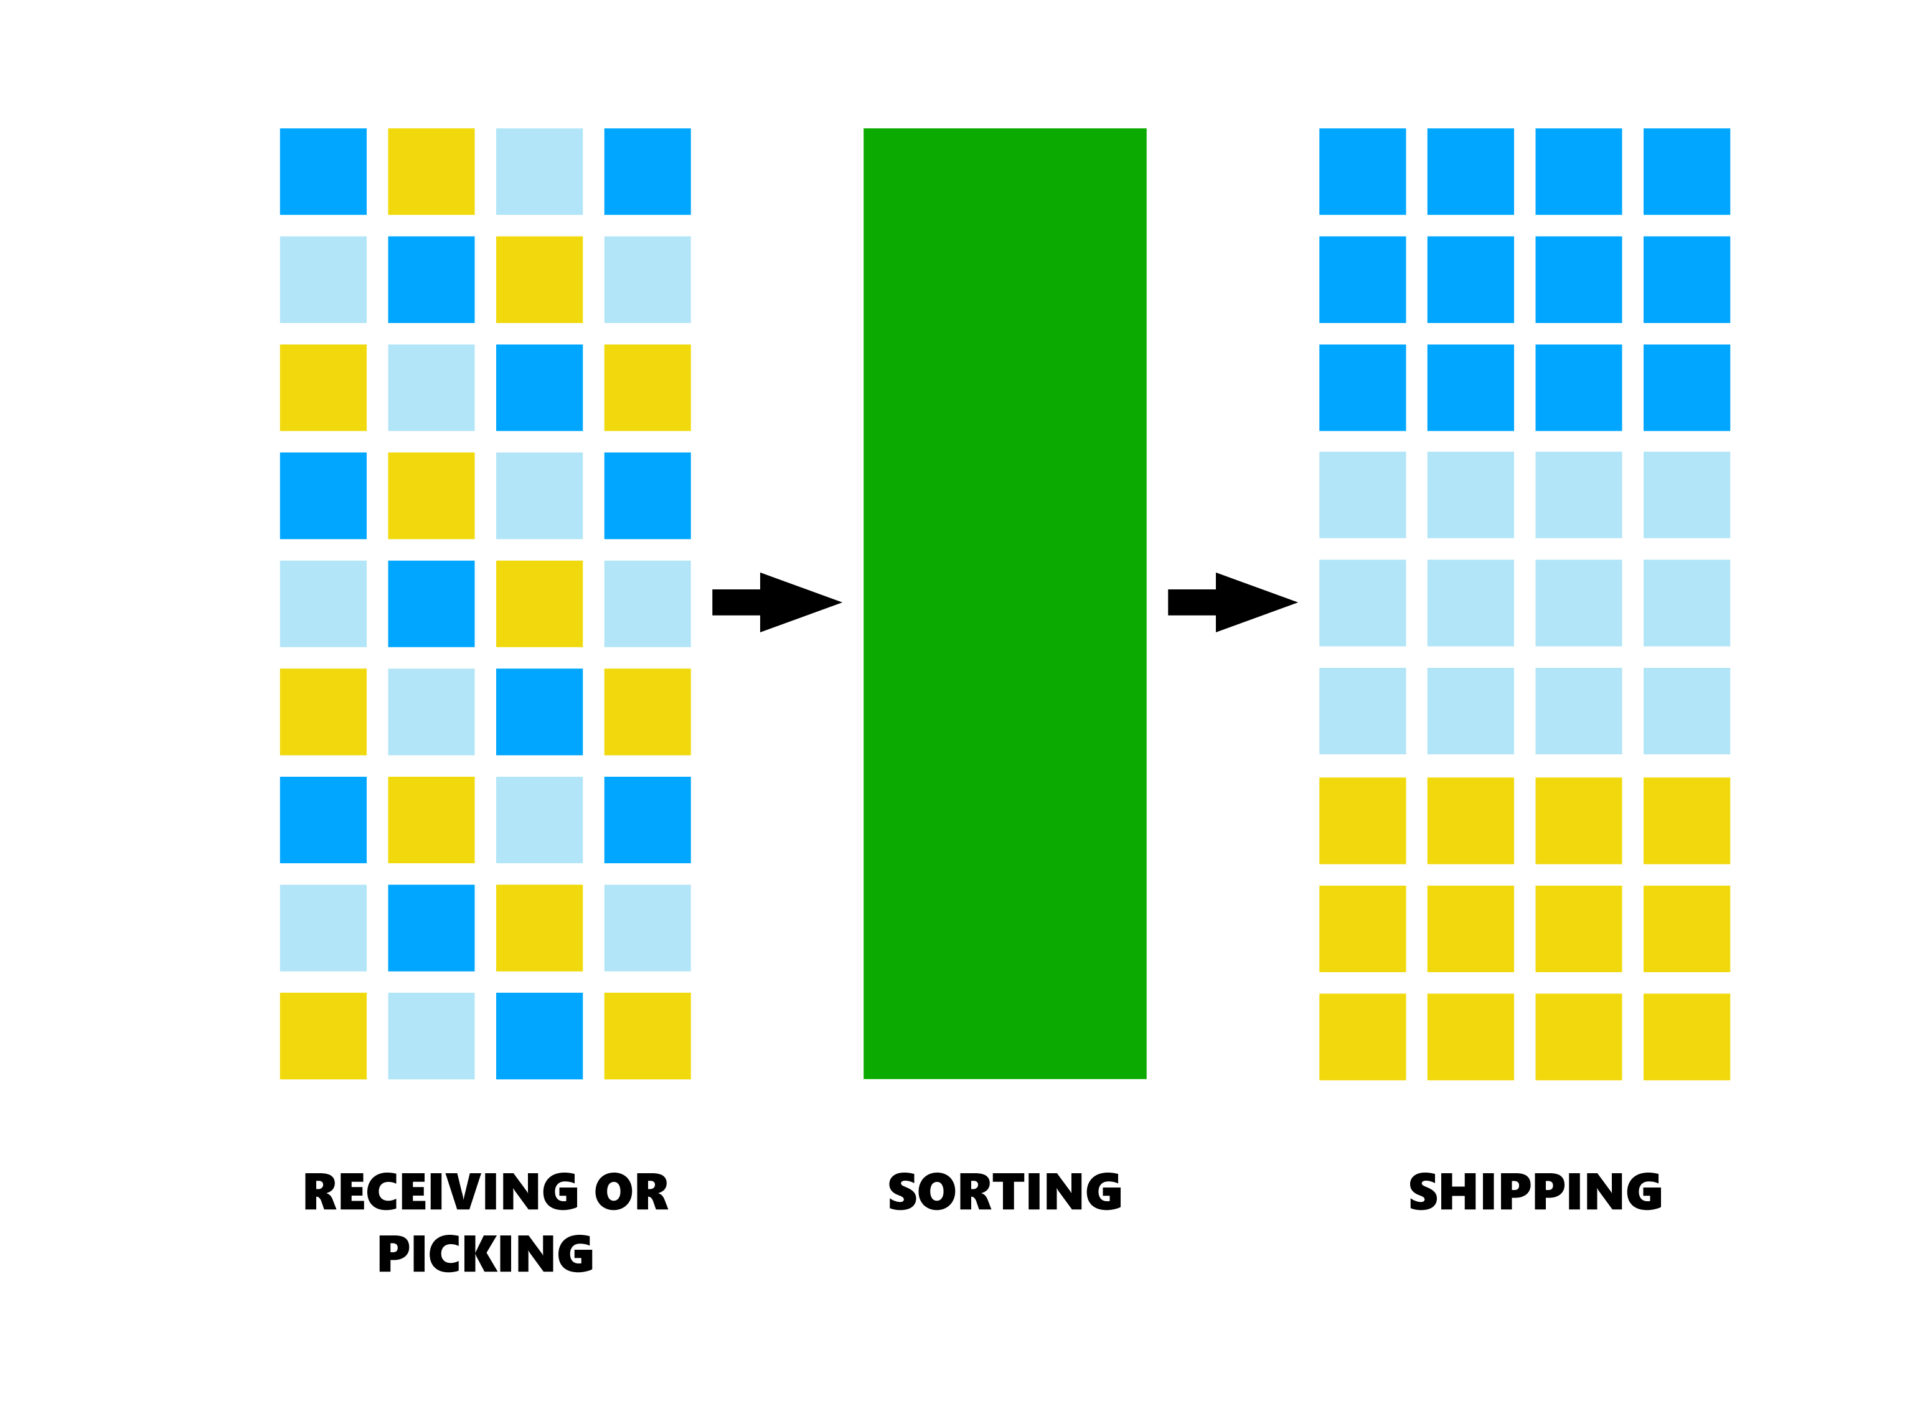 Typical parcel, retail or e-commerce sorting process